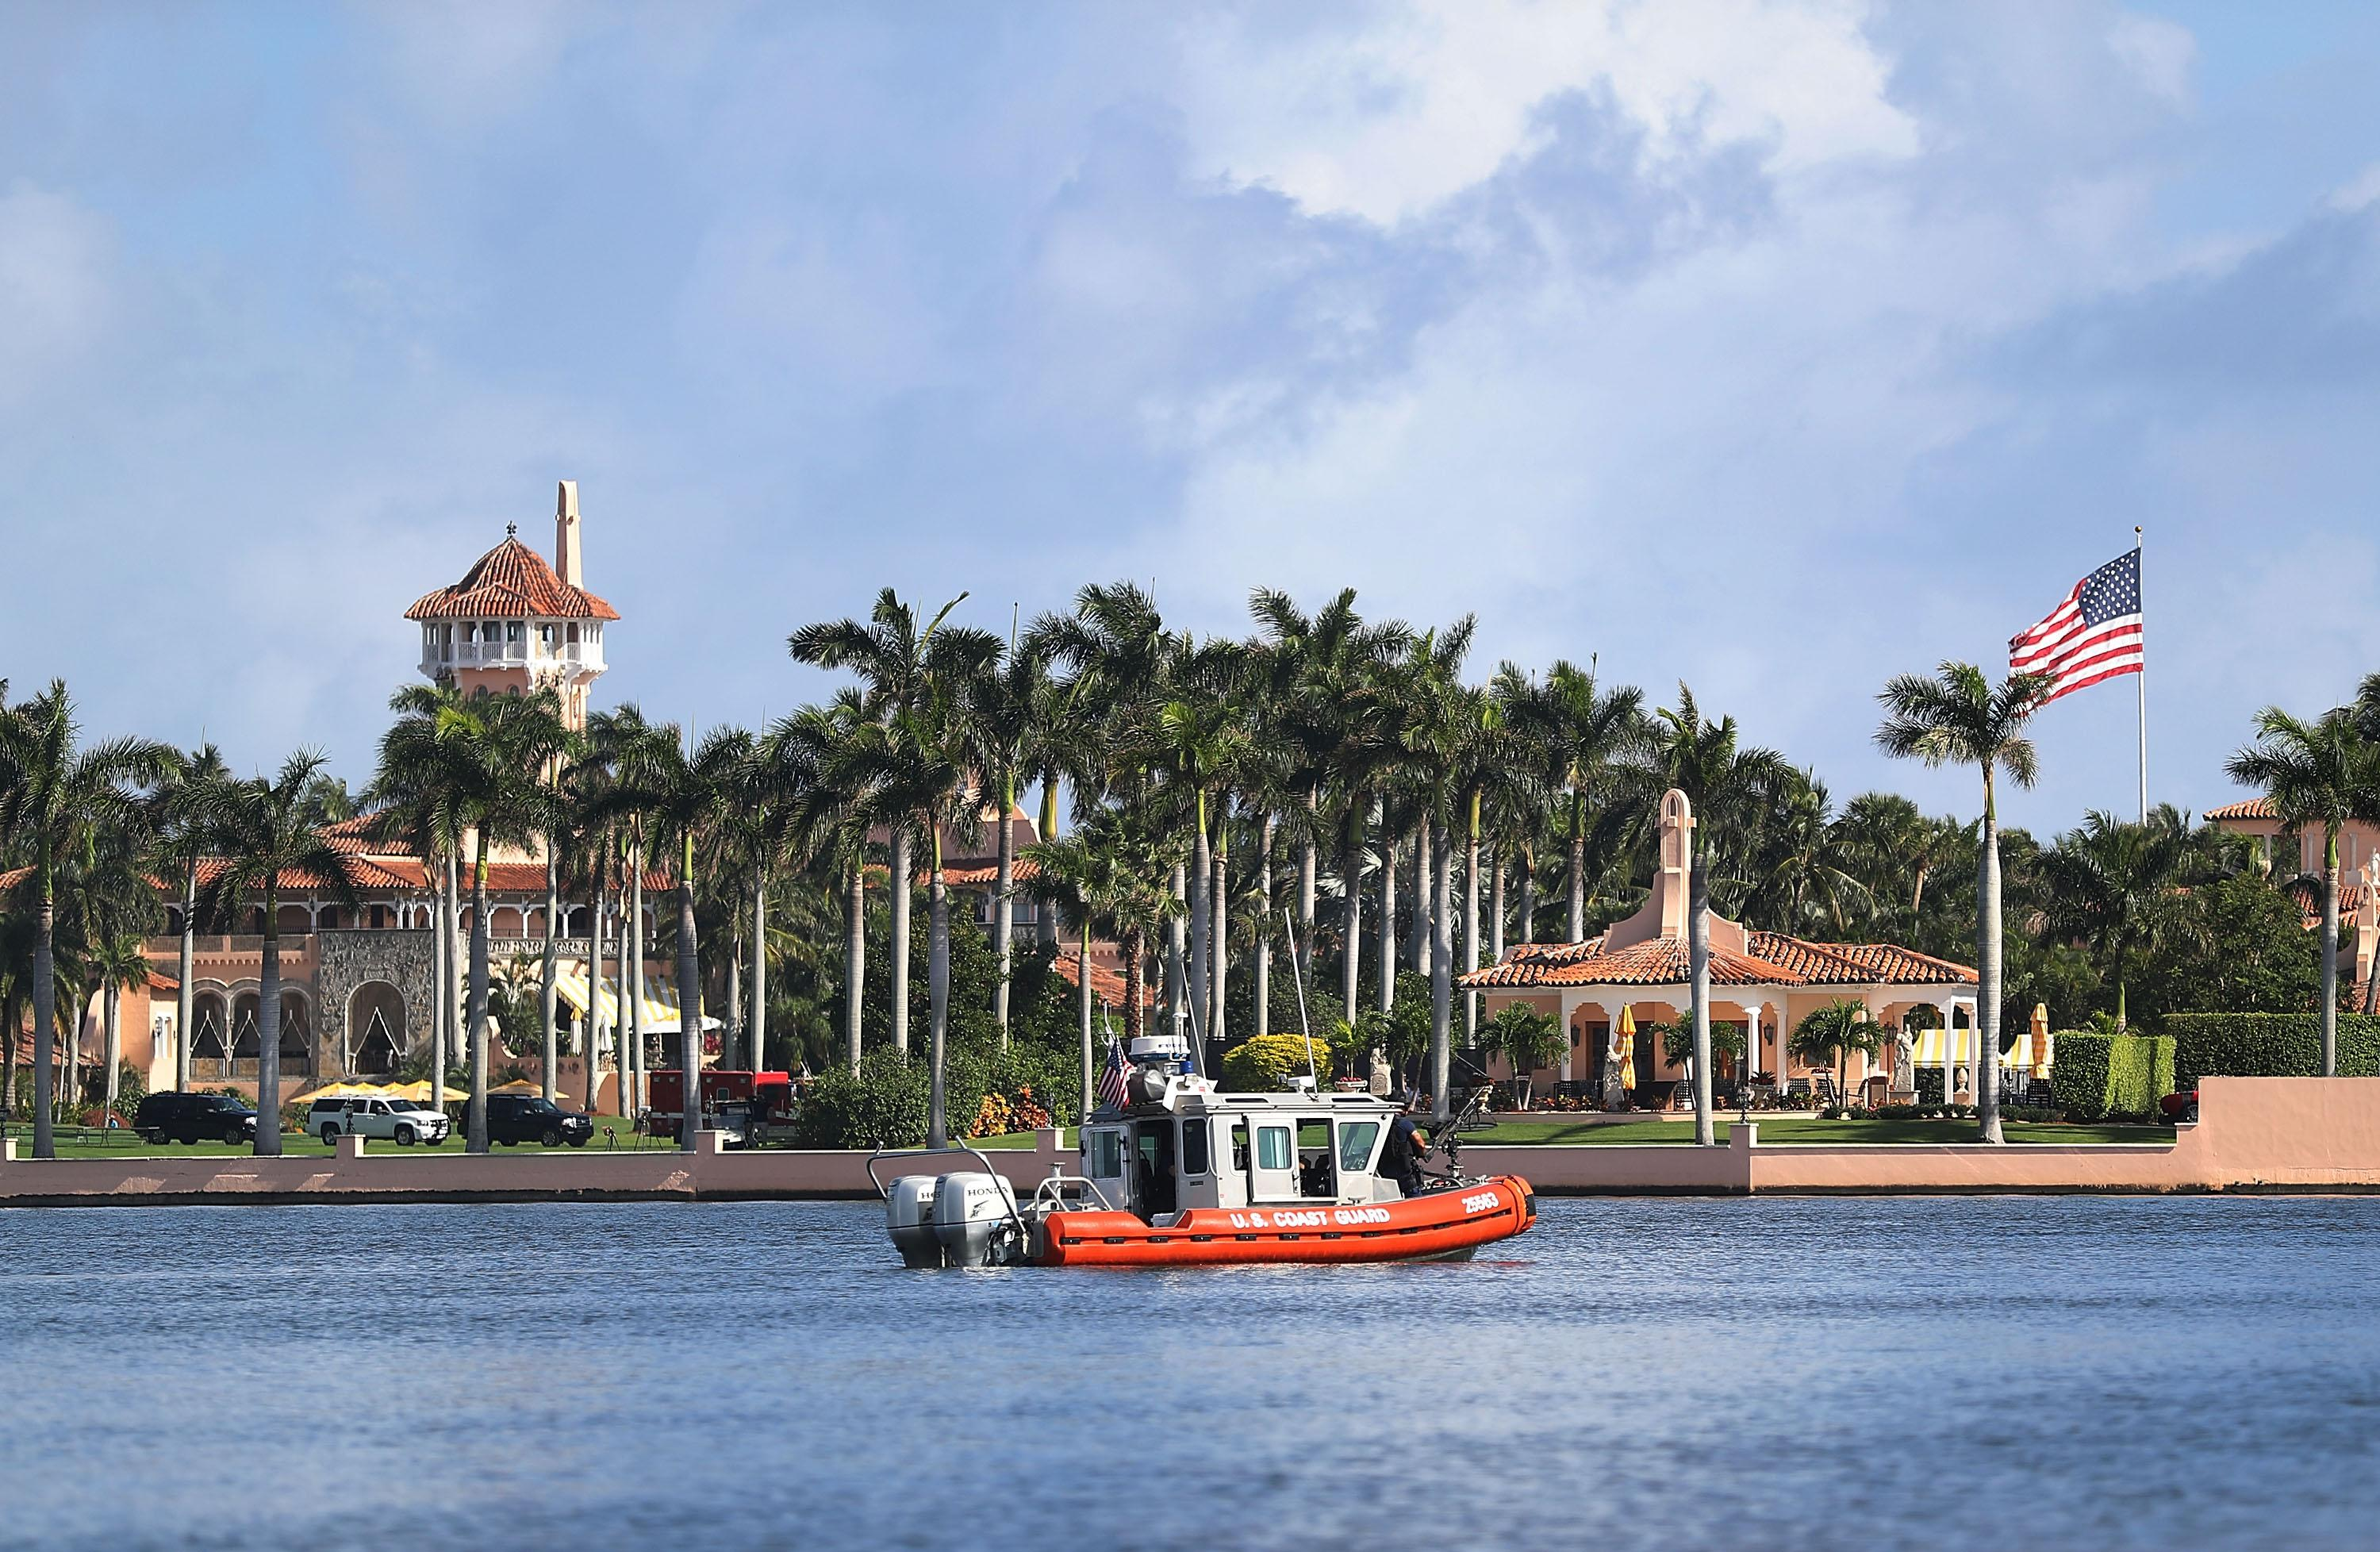 A U.S. Coast Guard boat passes in front of the Mar-a-Lago Resort.